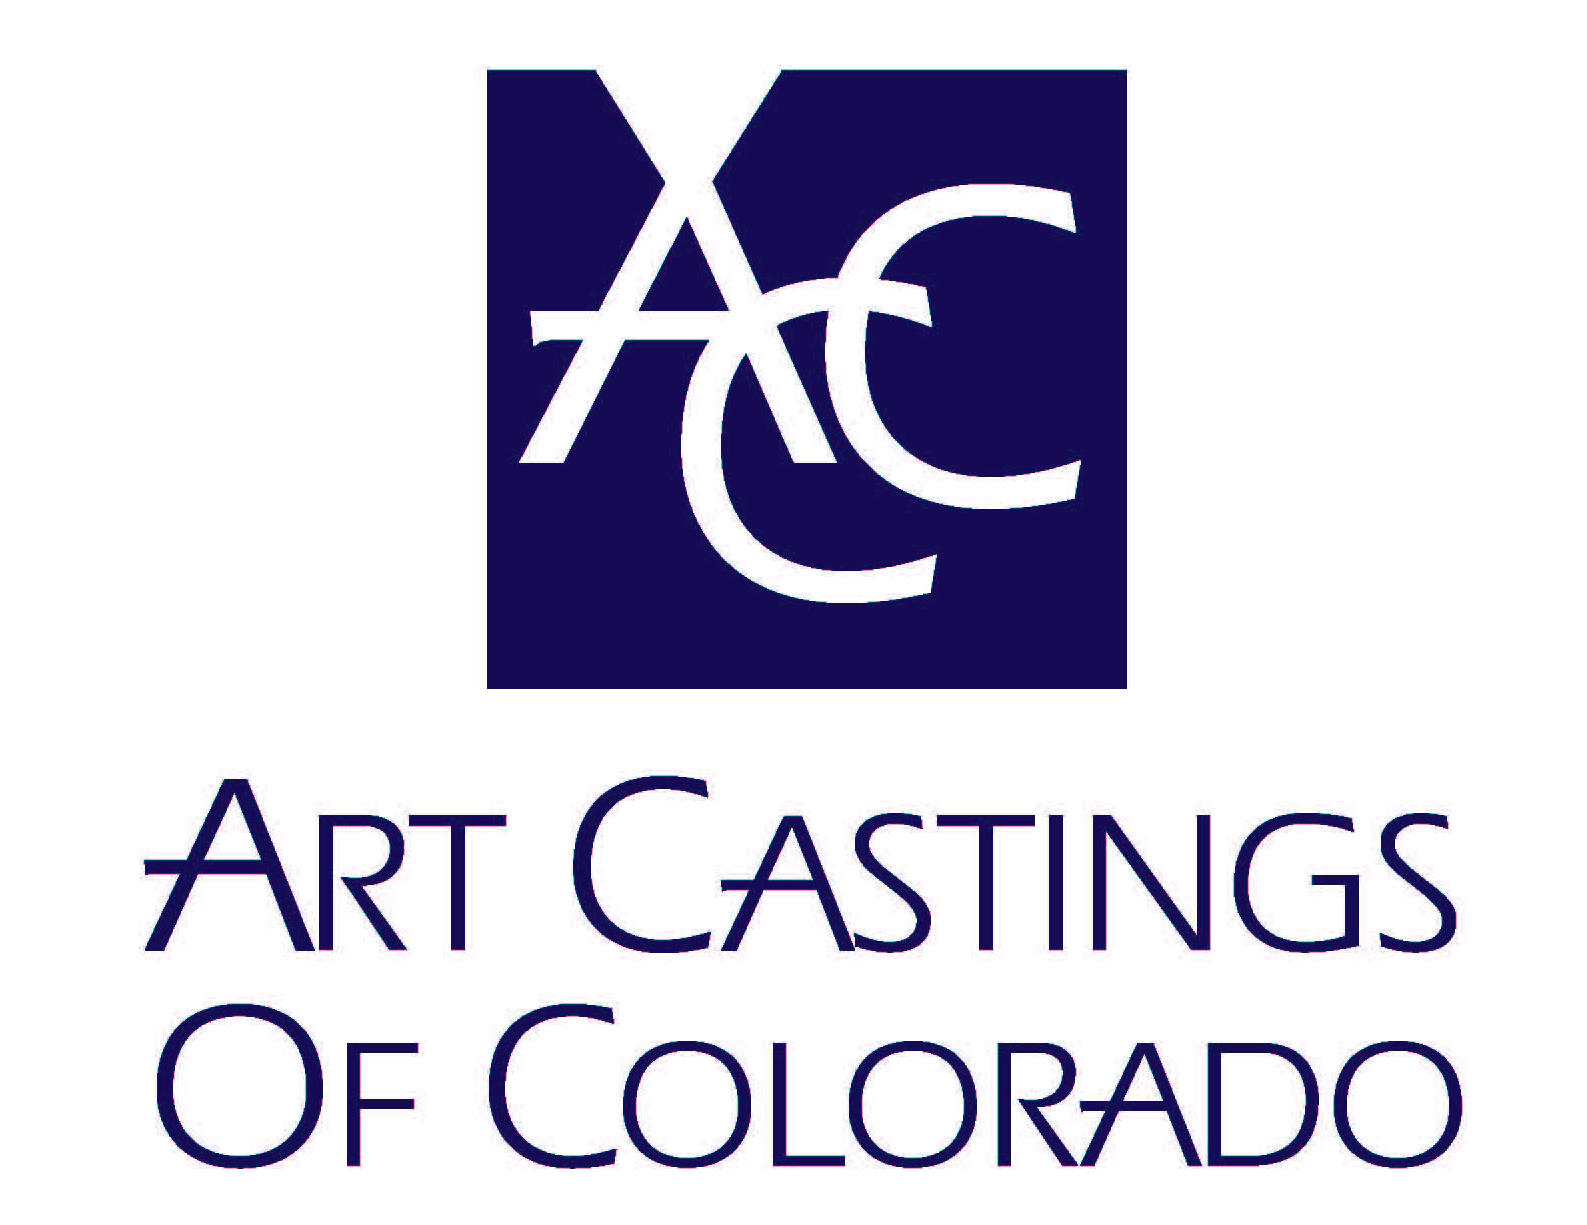 Art Castings of Colorado